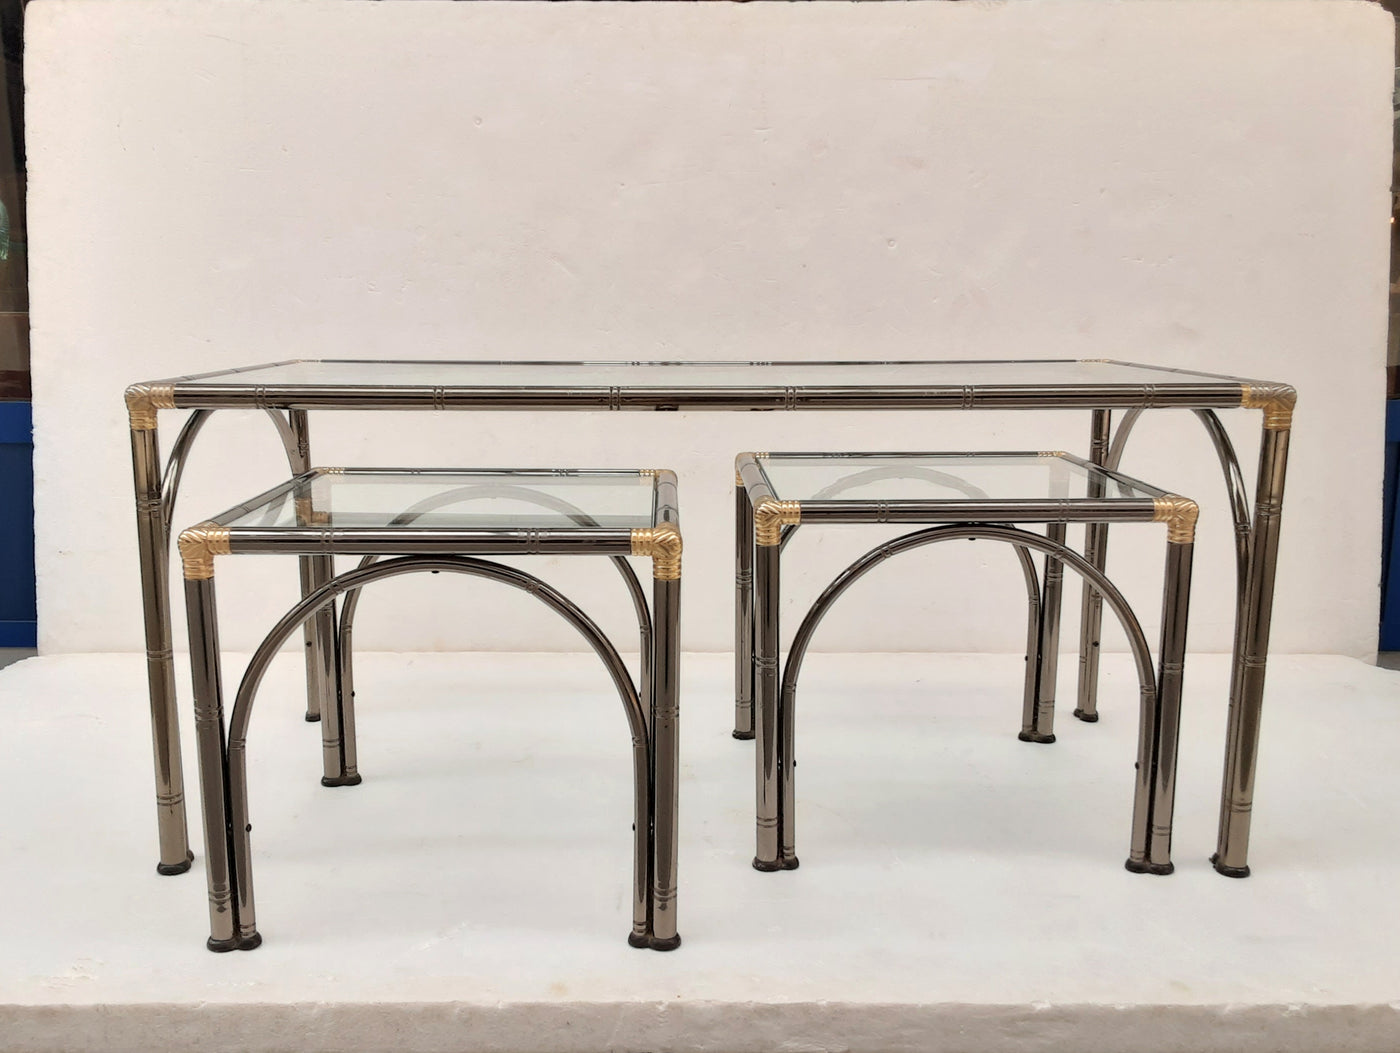 #6493-PPUG - Triptych of Silver & Gold Metal Tables